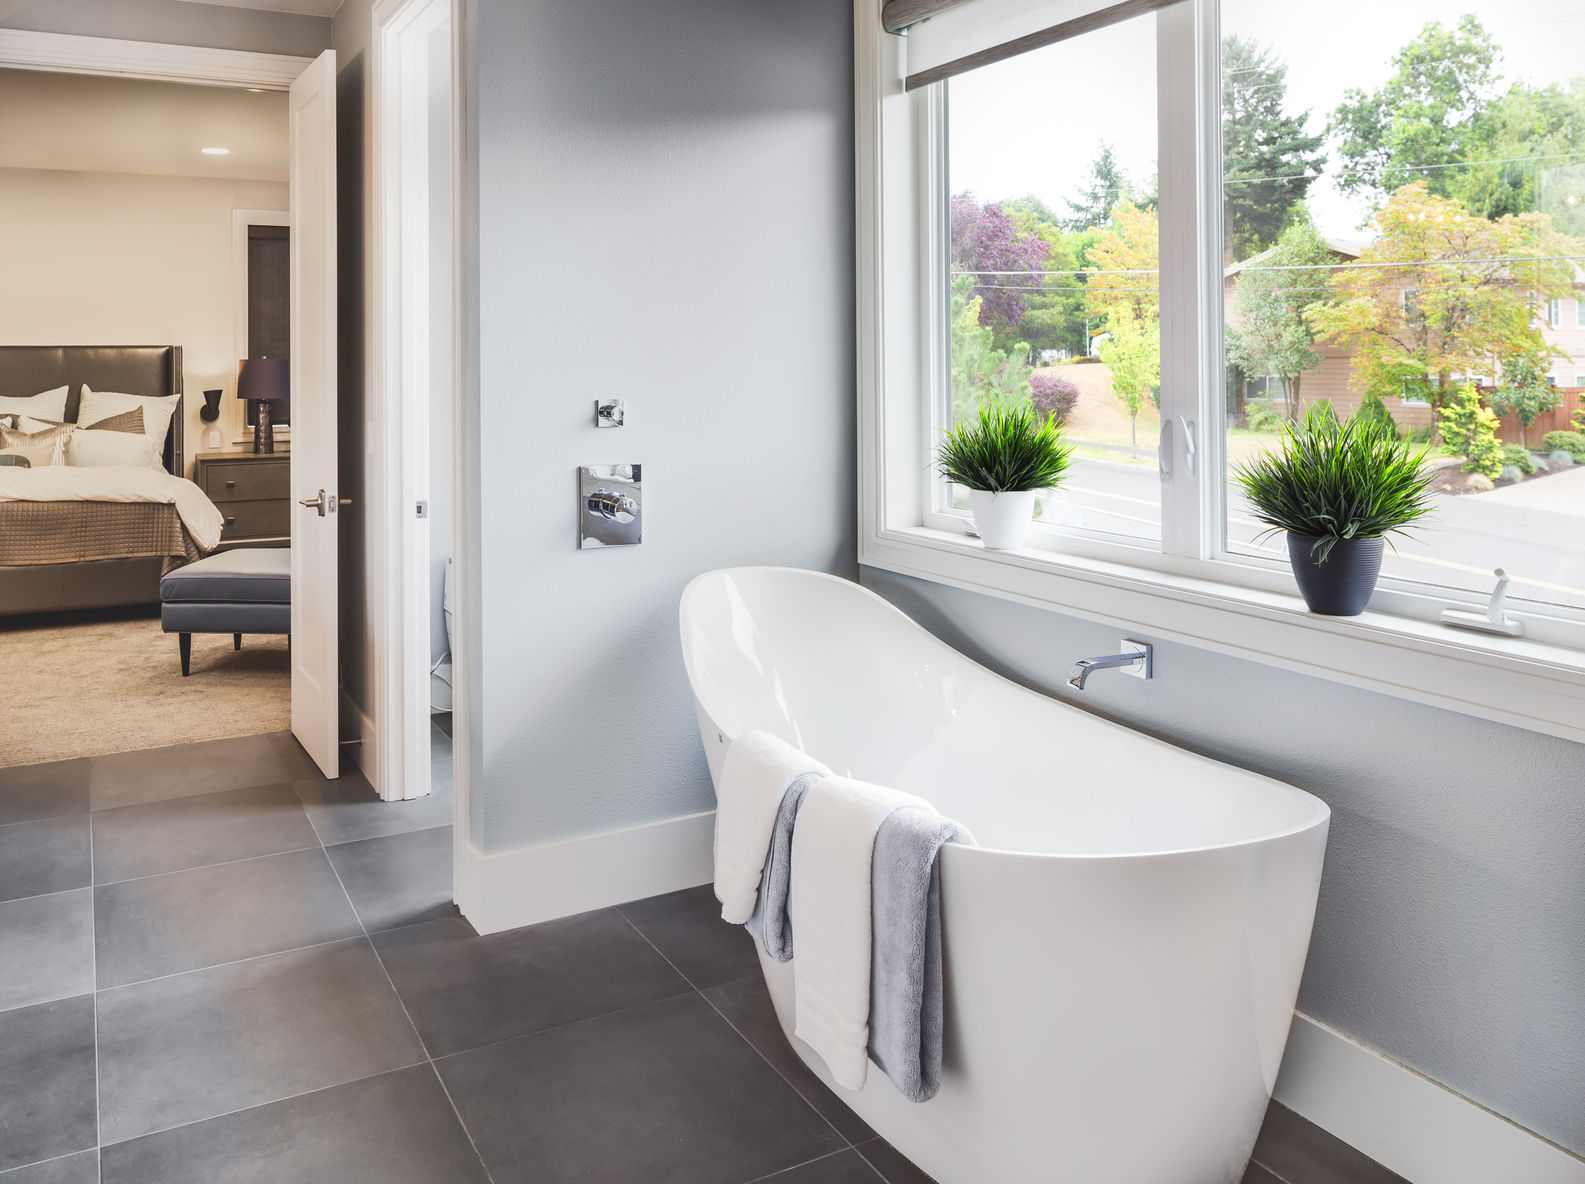 6 Tips to Make Your Master Bathroom Sellable